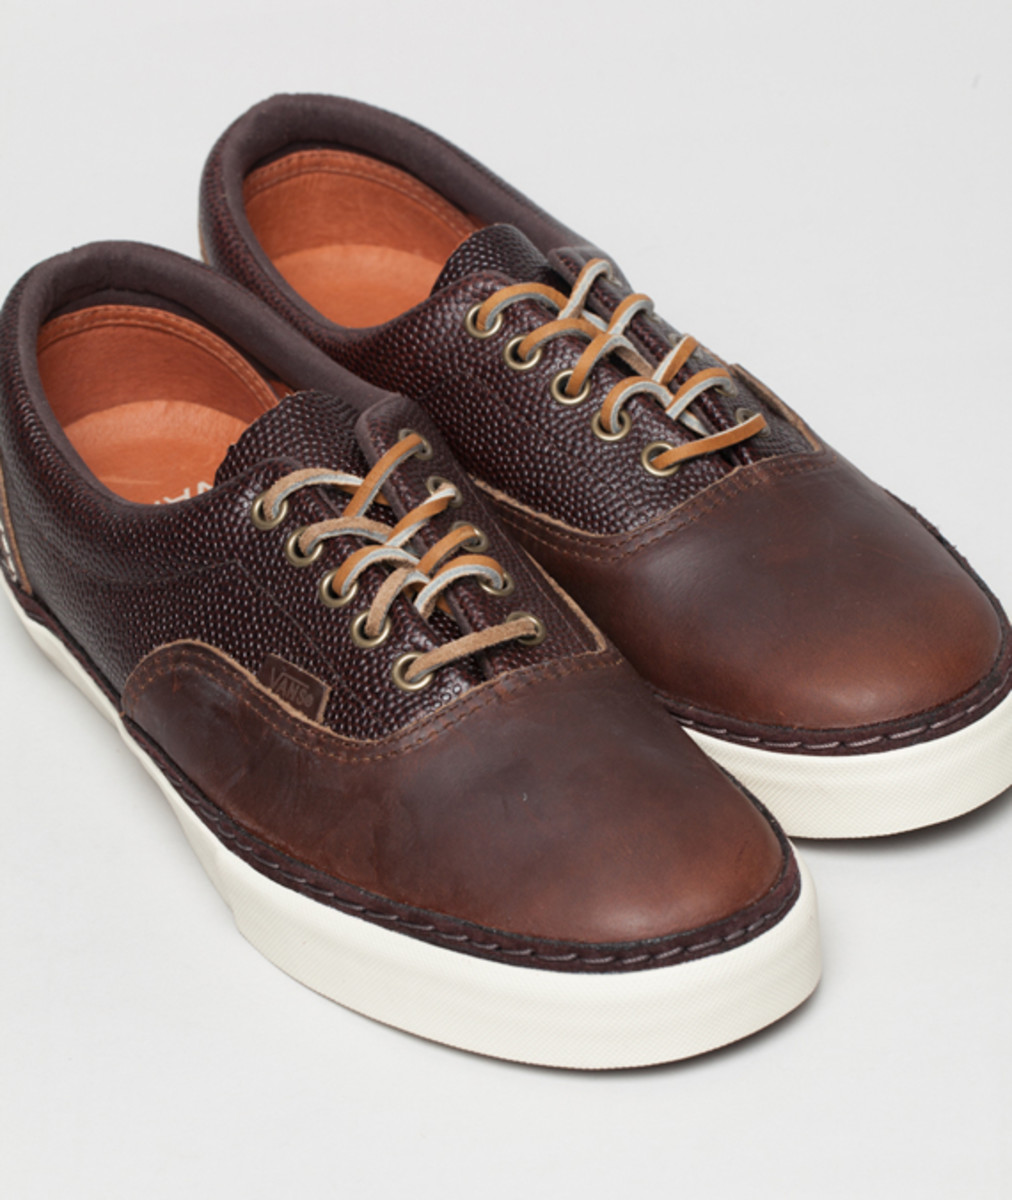 horween-leather-vans-era-hw-lx-07